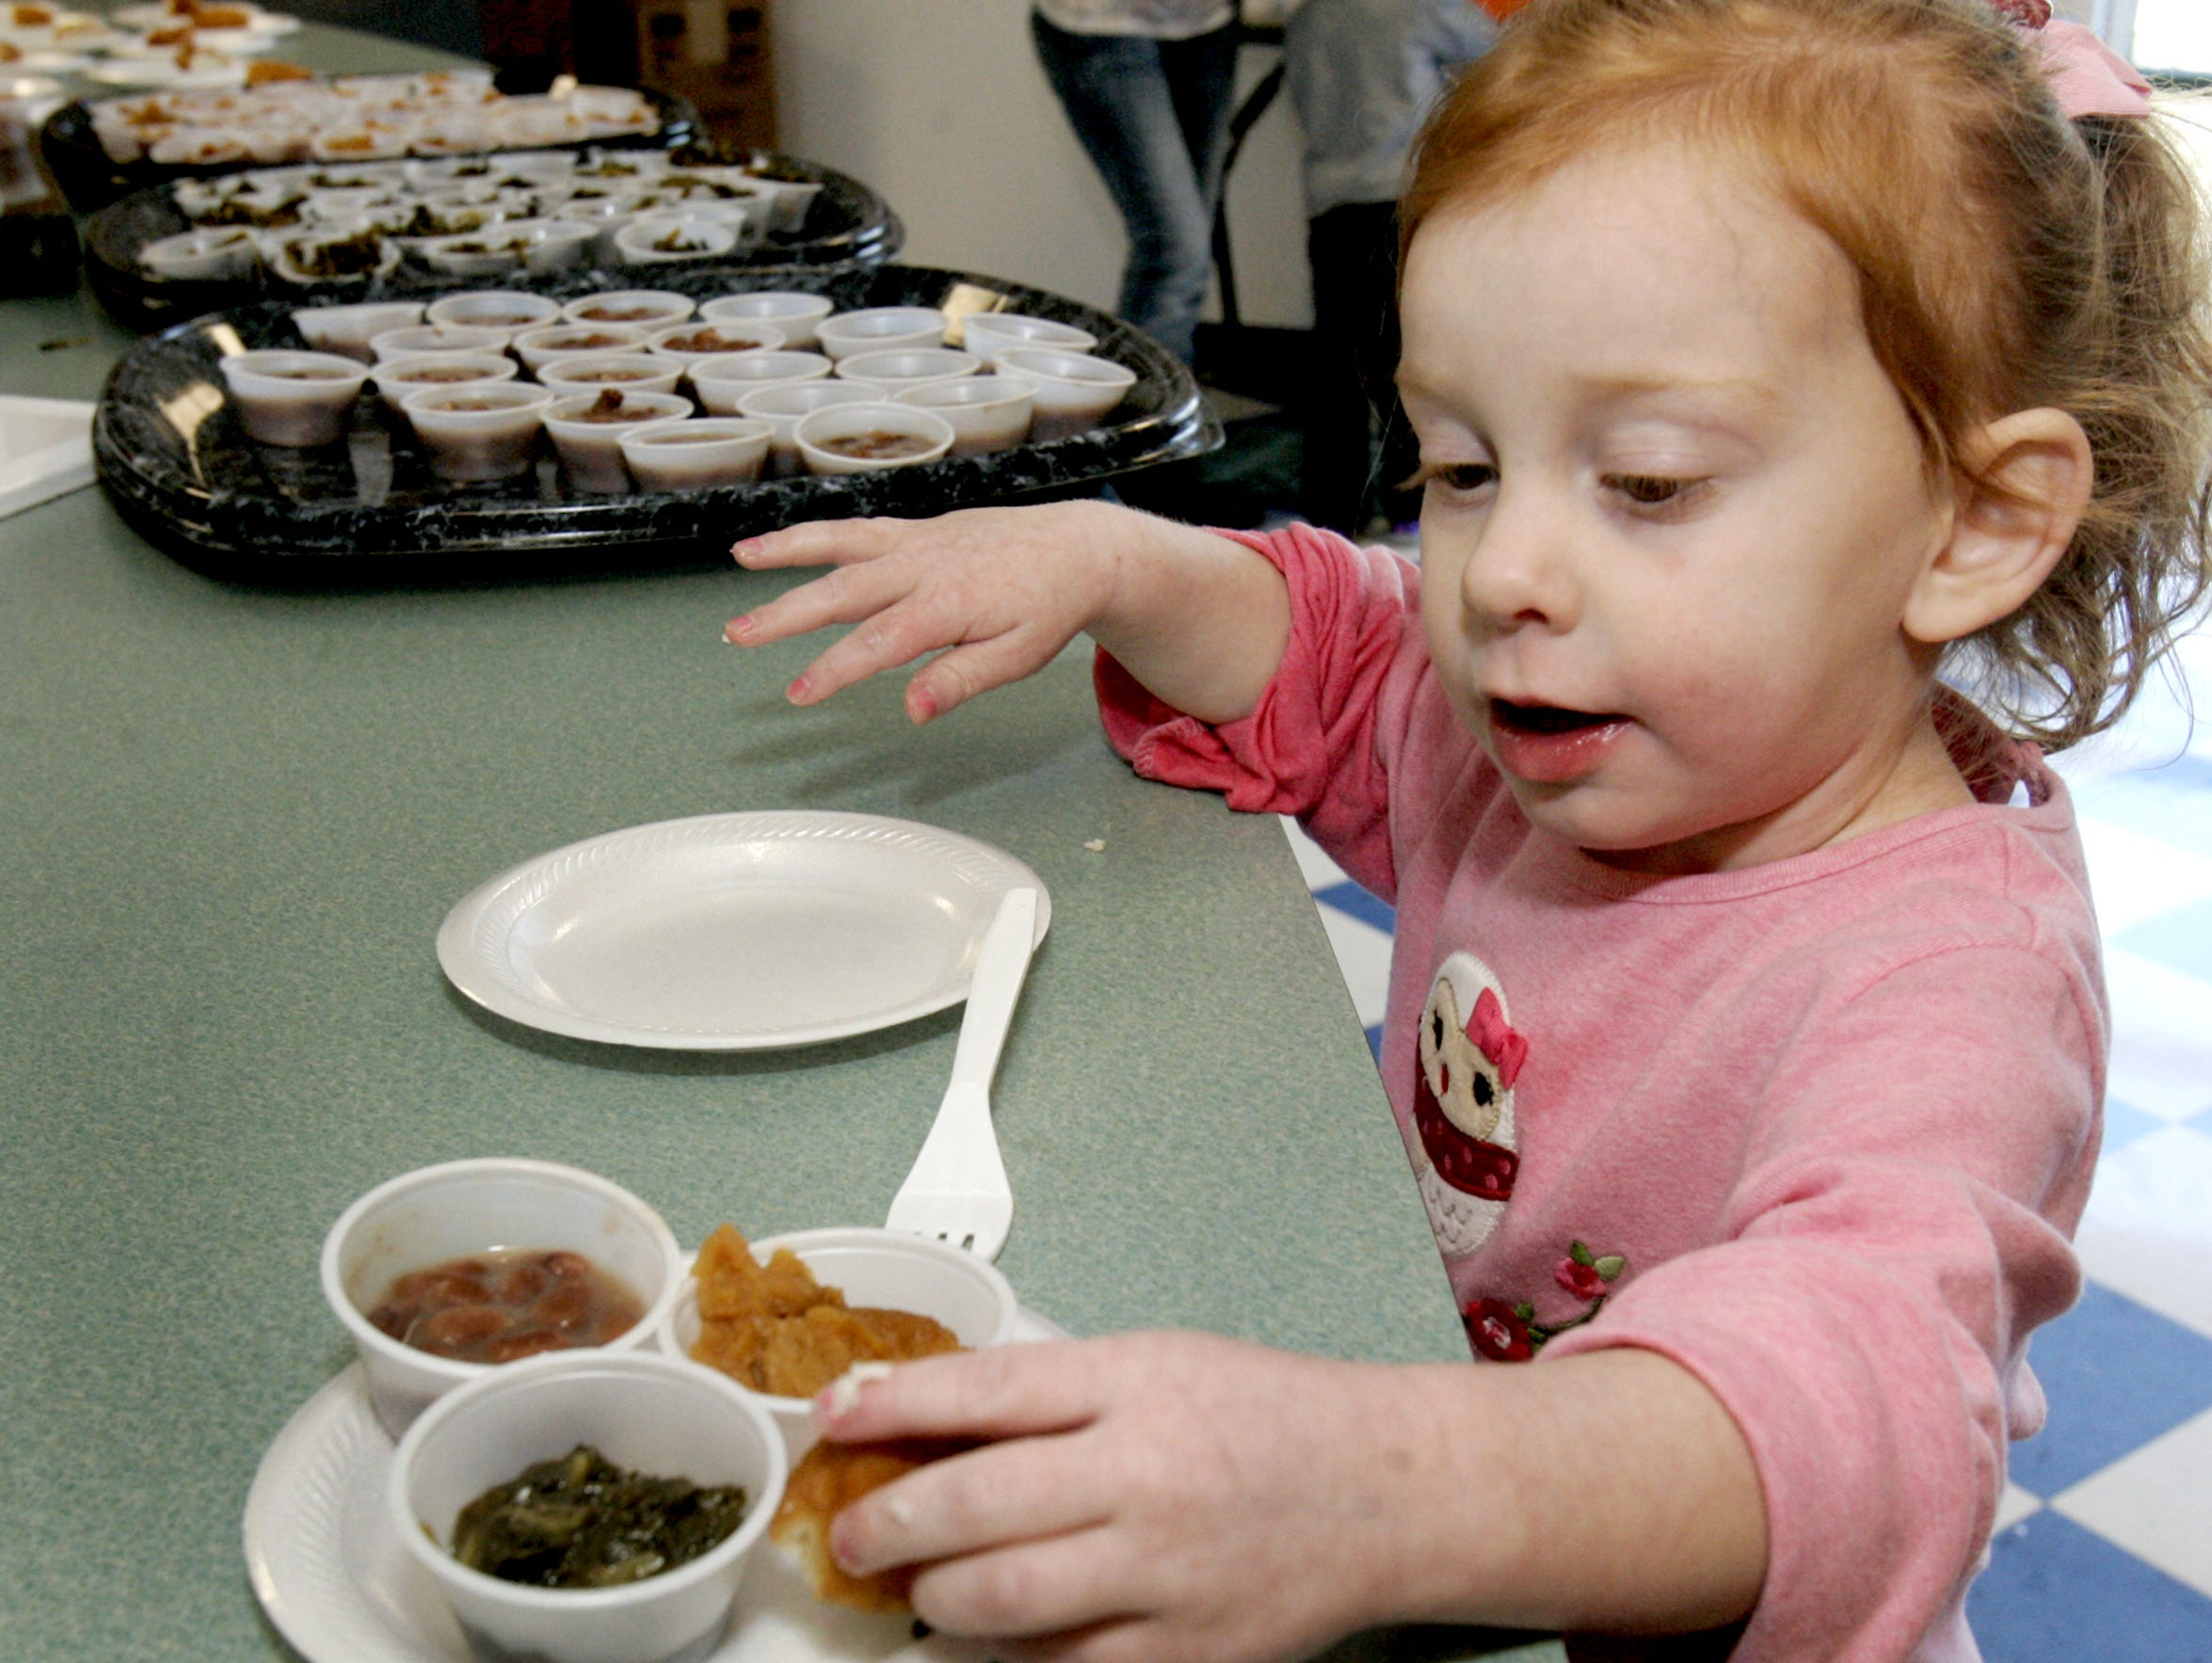 Children and adults can enjoy offerings at the annual